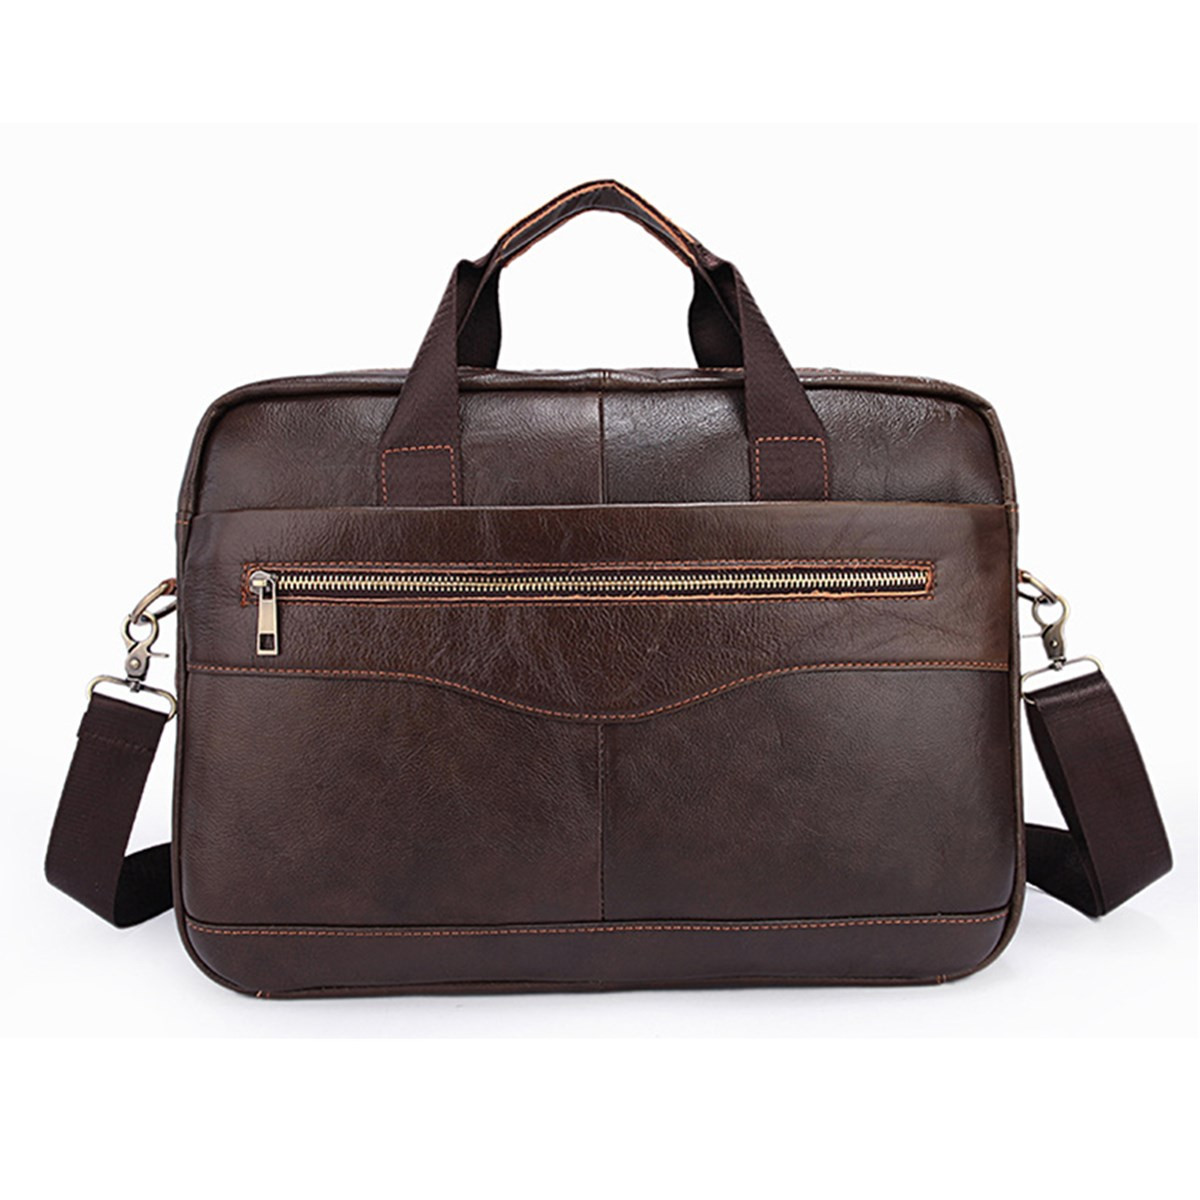 Cowhide Leather Briefcase Male Genuine Leather Handbags Crossbody Bags Men's High Quality Luxury Business Messenger Bags Laptop